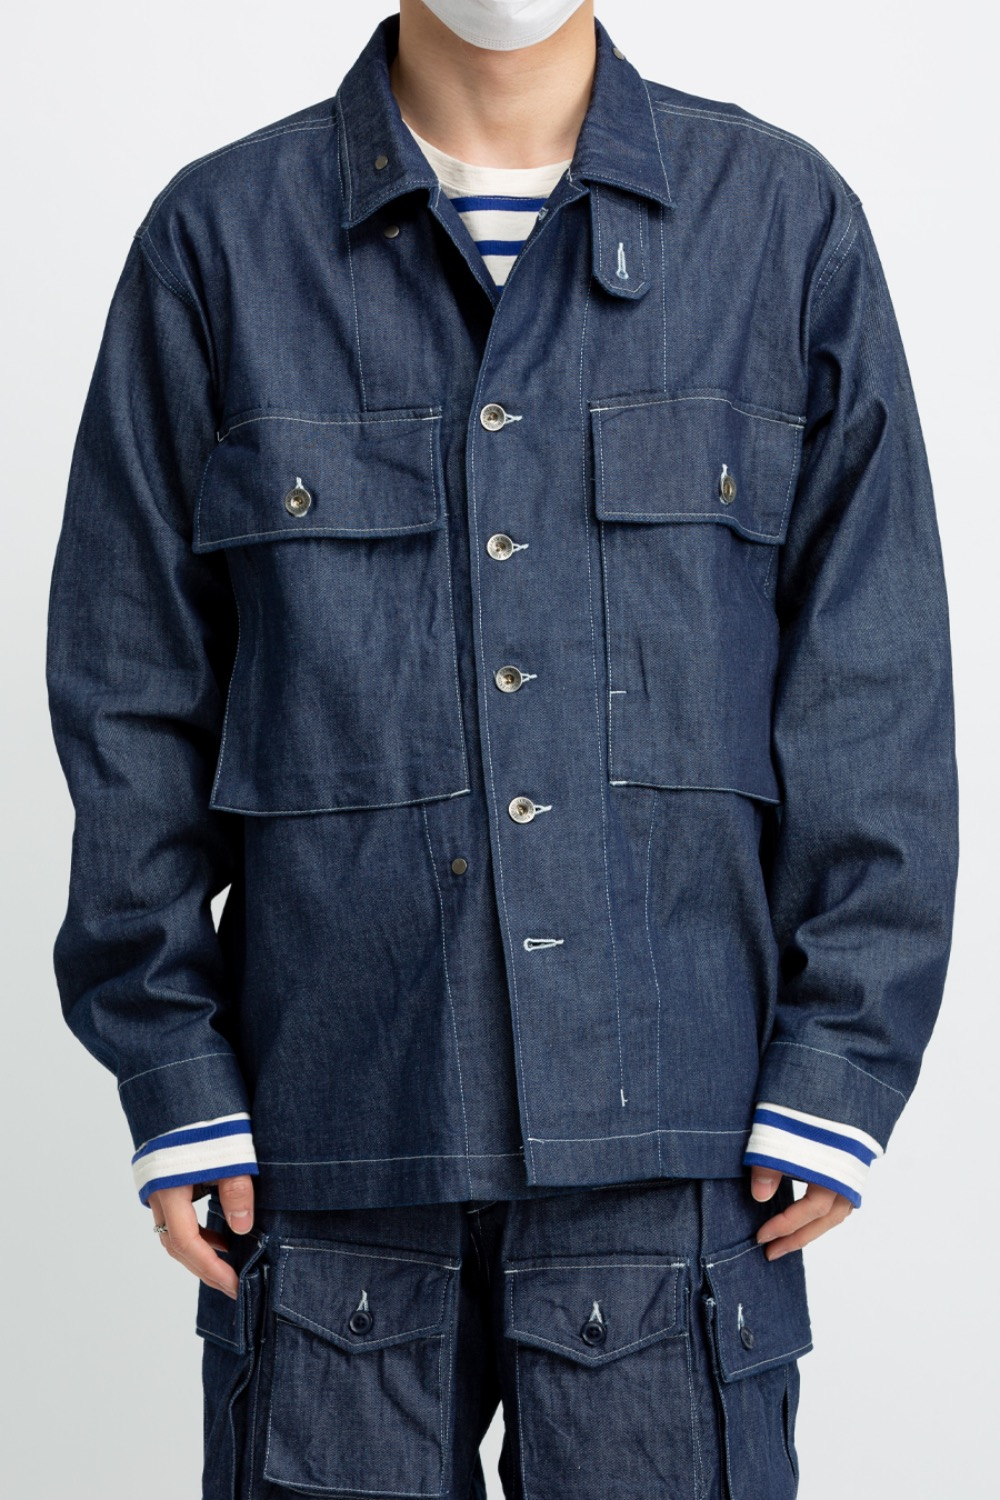 M43/2 SHIRT JACKET INDIGO 8OZ CONE DENIM